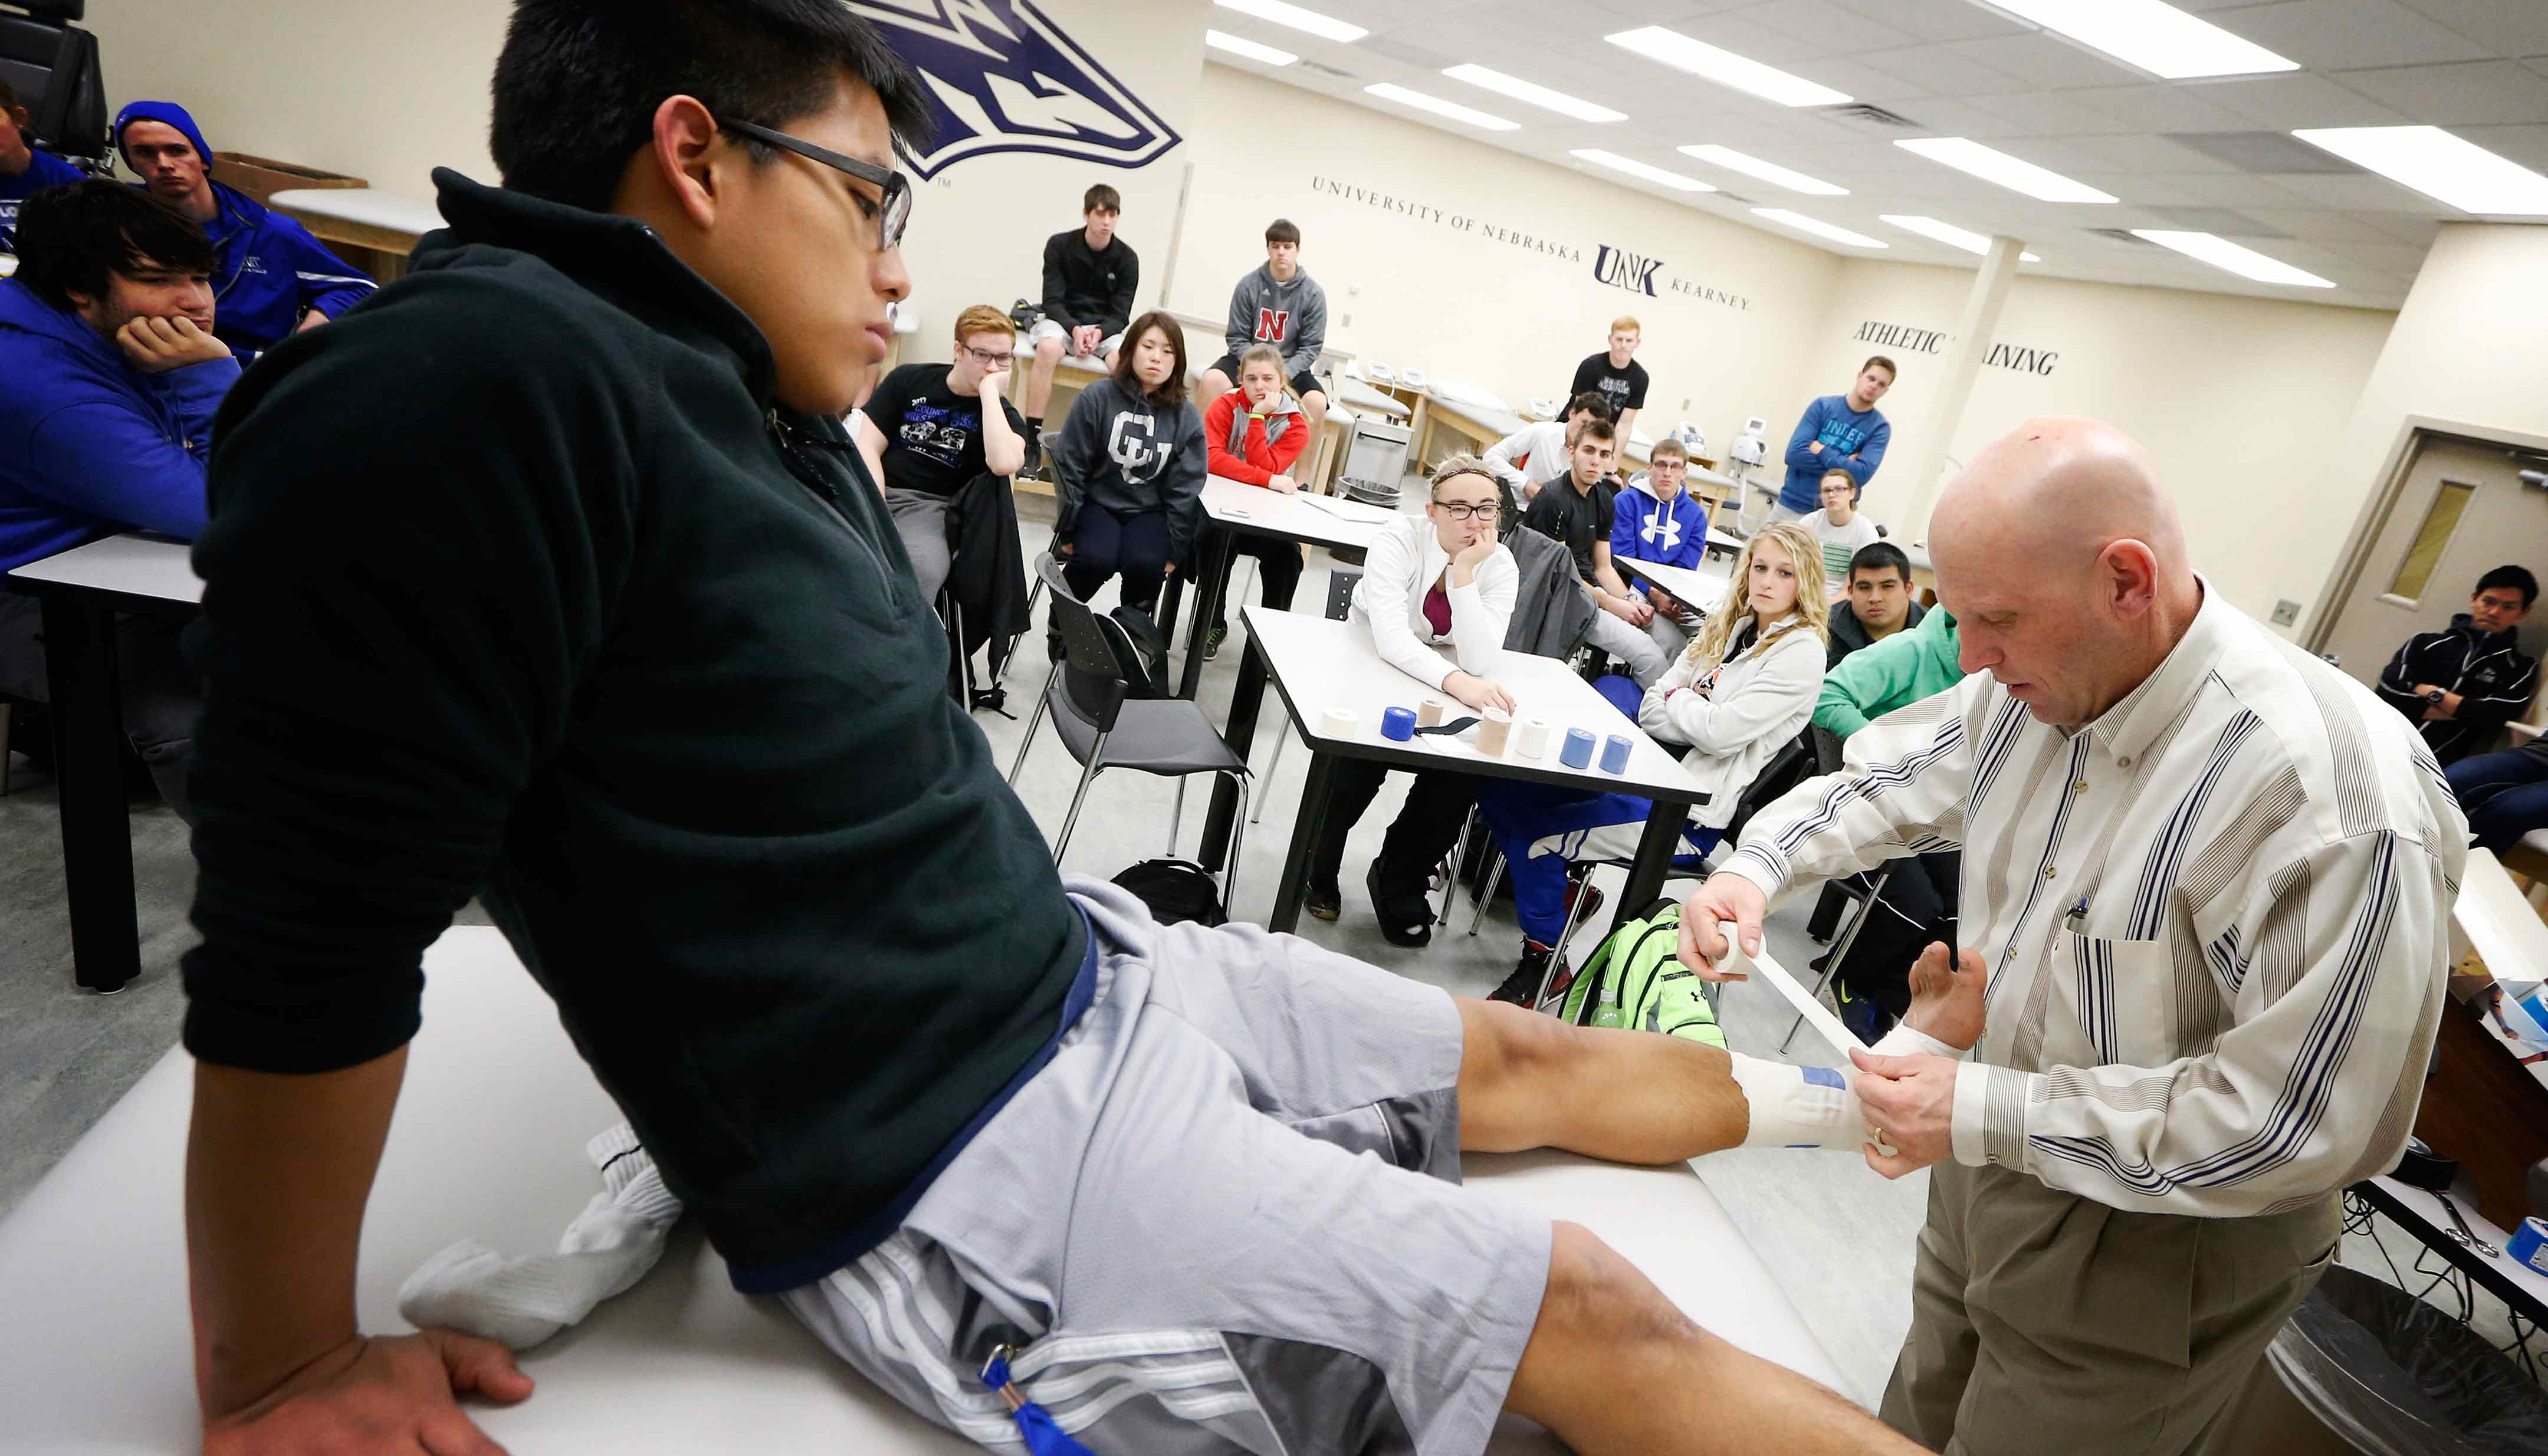 Scott Unruh, professor of kinesiology and sport sciences at UNK, instructs students on taping ankles inside the new athletic training classroom and lab.